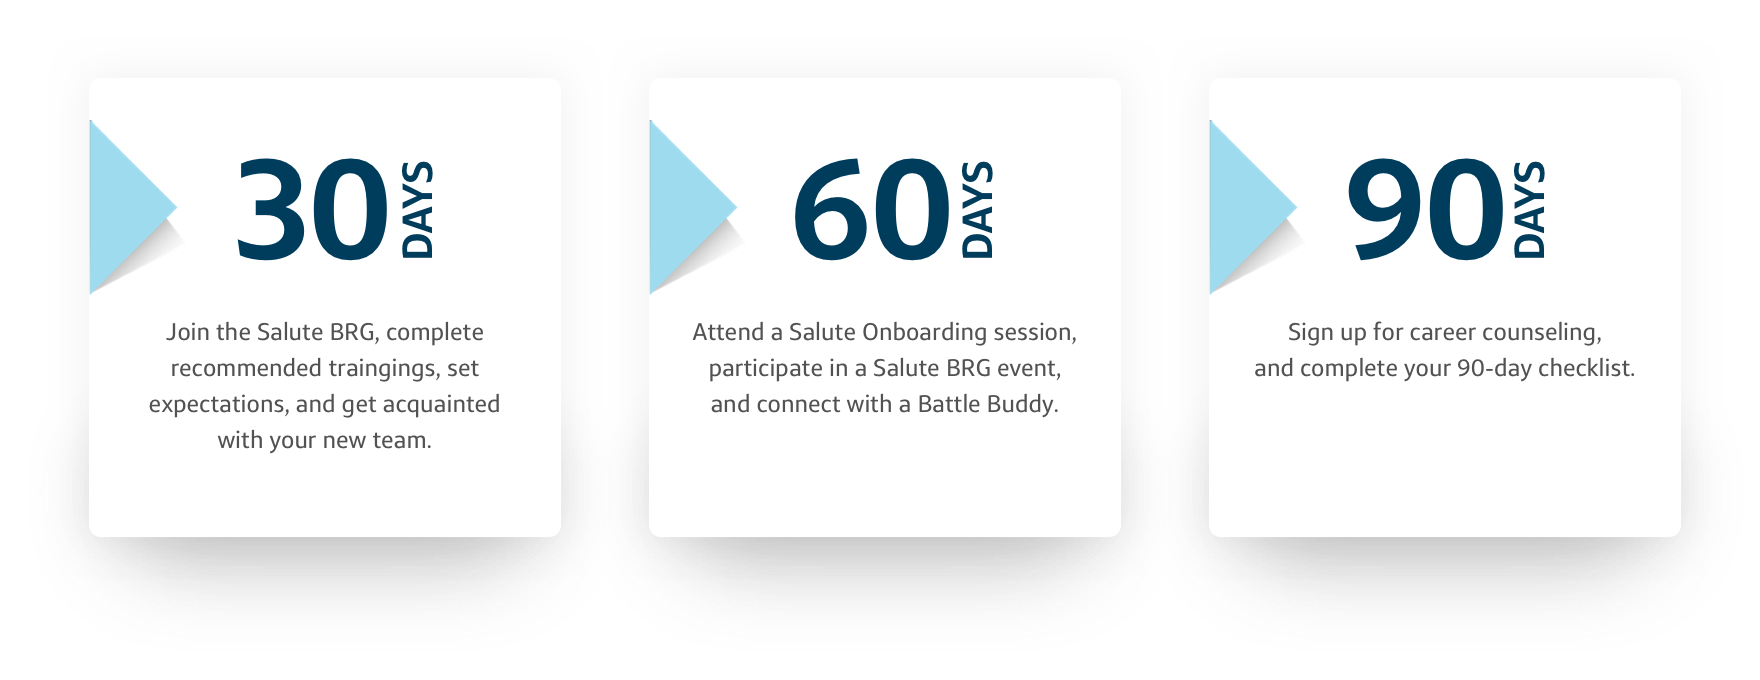 Military Transition Program at Capital One infographic showing the touchpoints and days 30, 60, and 90